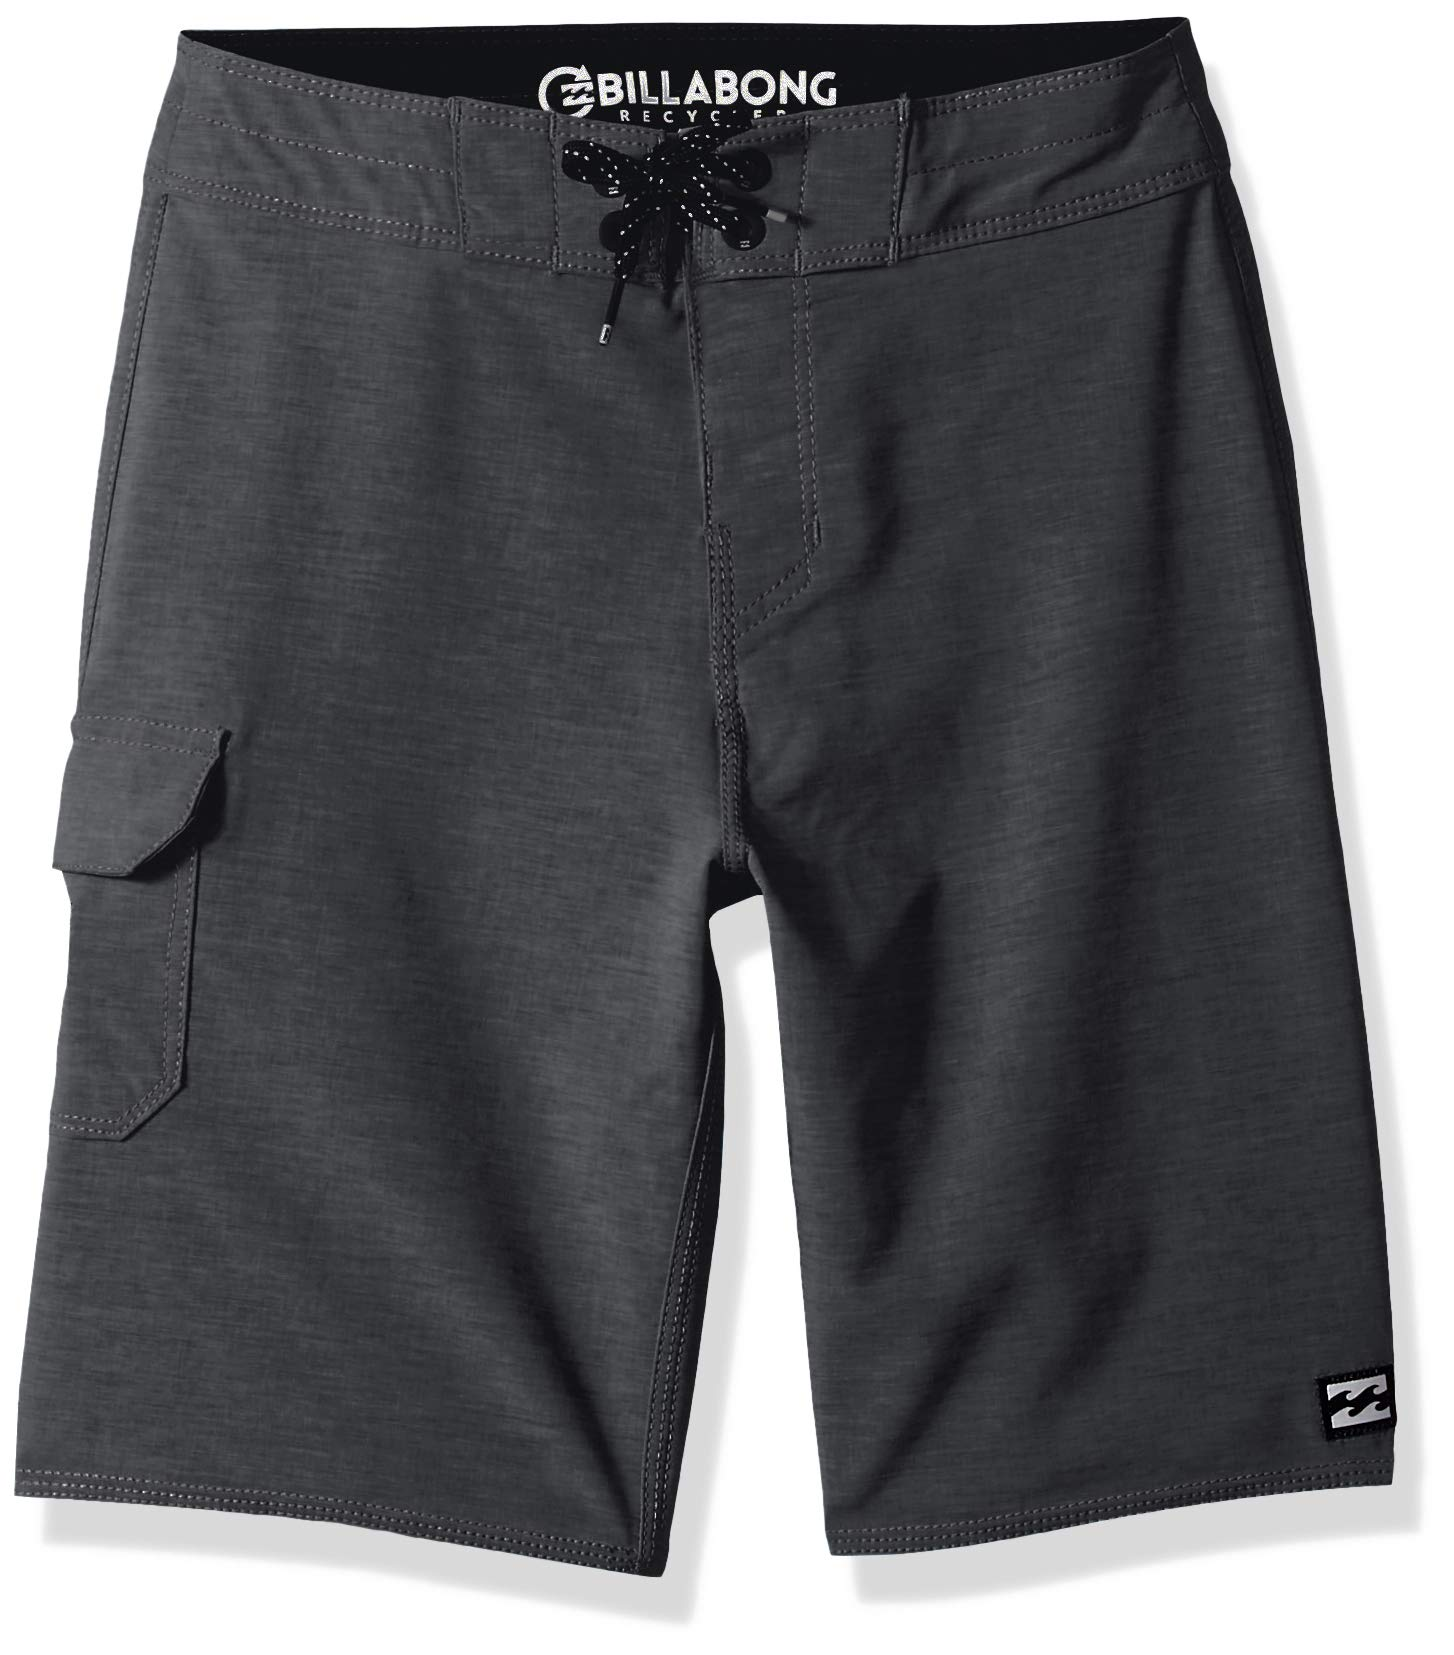 Billabong Boys' All Day Pro Boardshorts Charcoal Heather 28